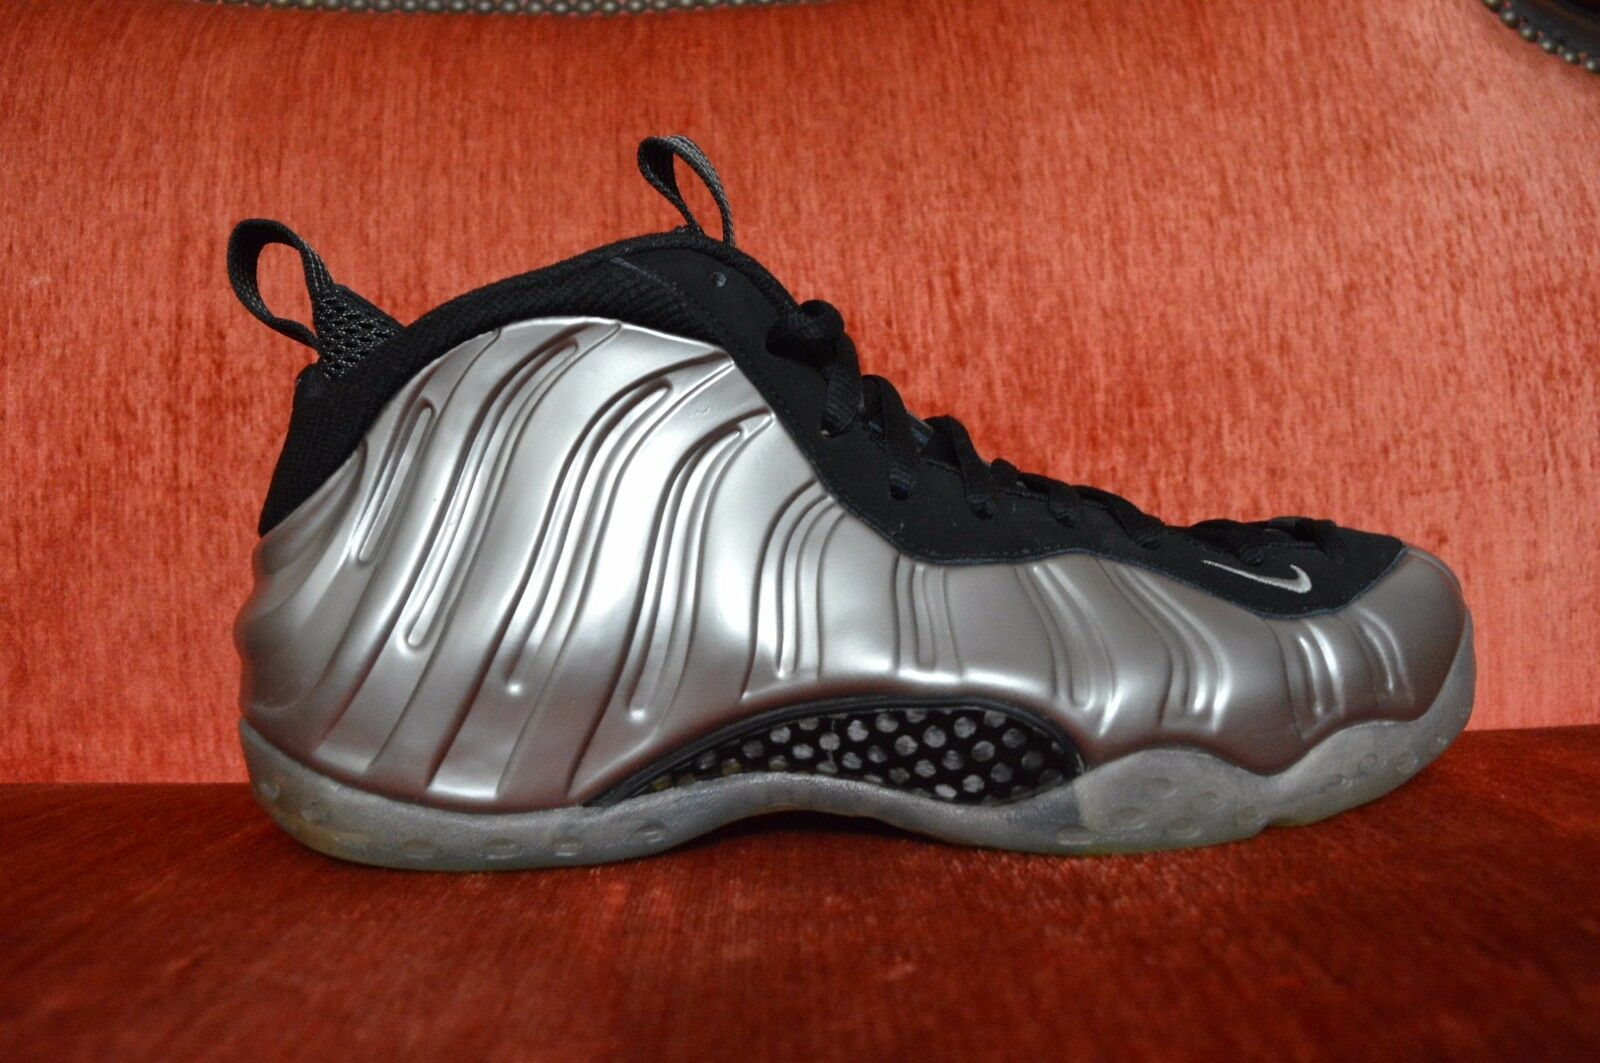 2010 NIKE AIR FOAMPOSITE ONE MENS OG METALLIC PEWTER BLACK 314996 004 Size 10